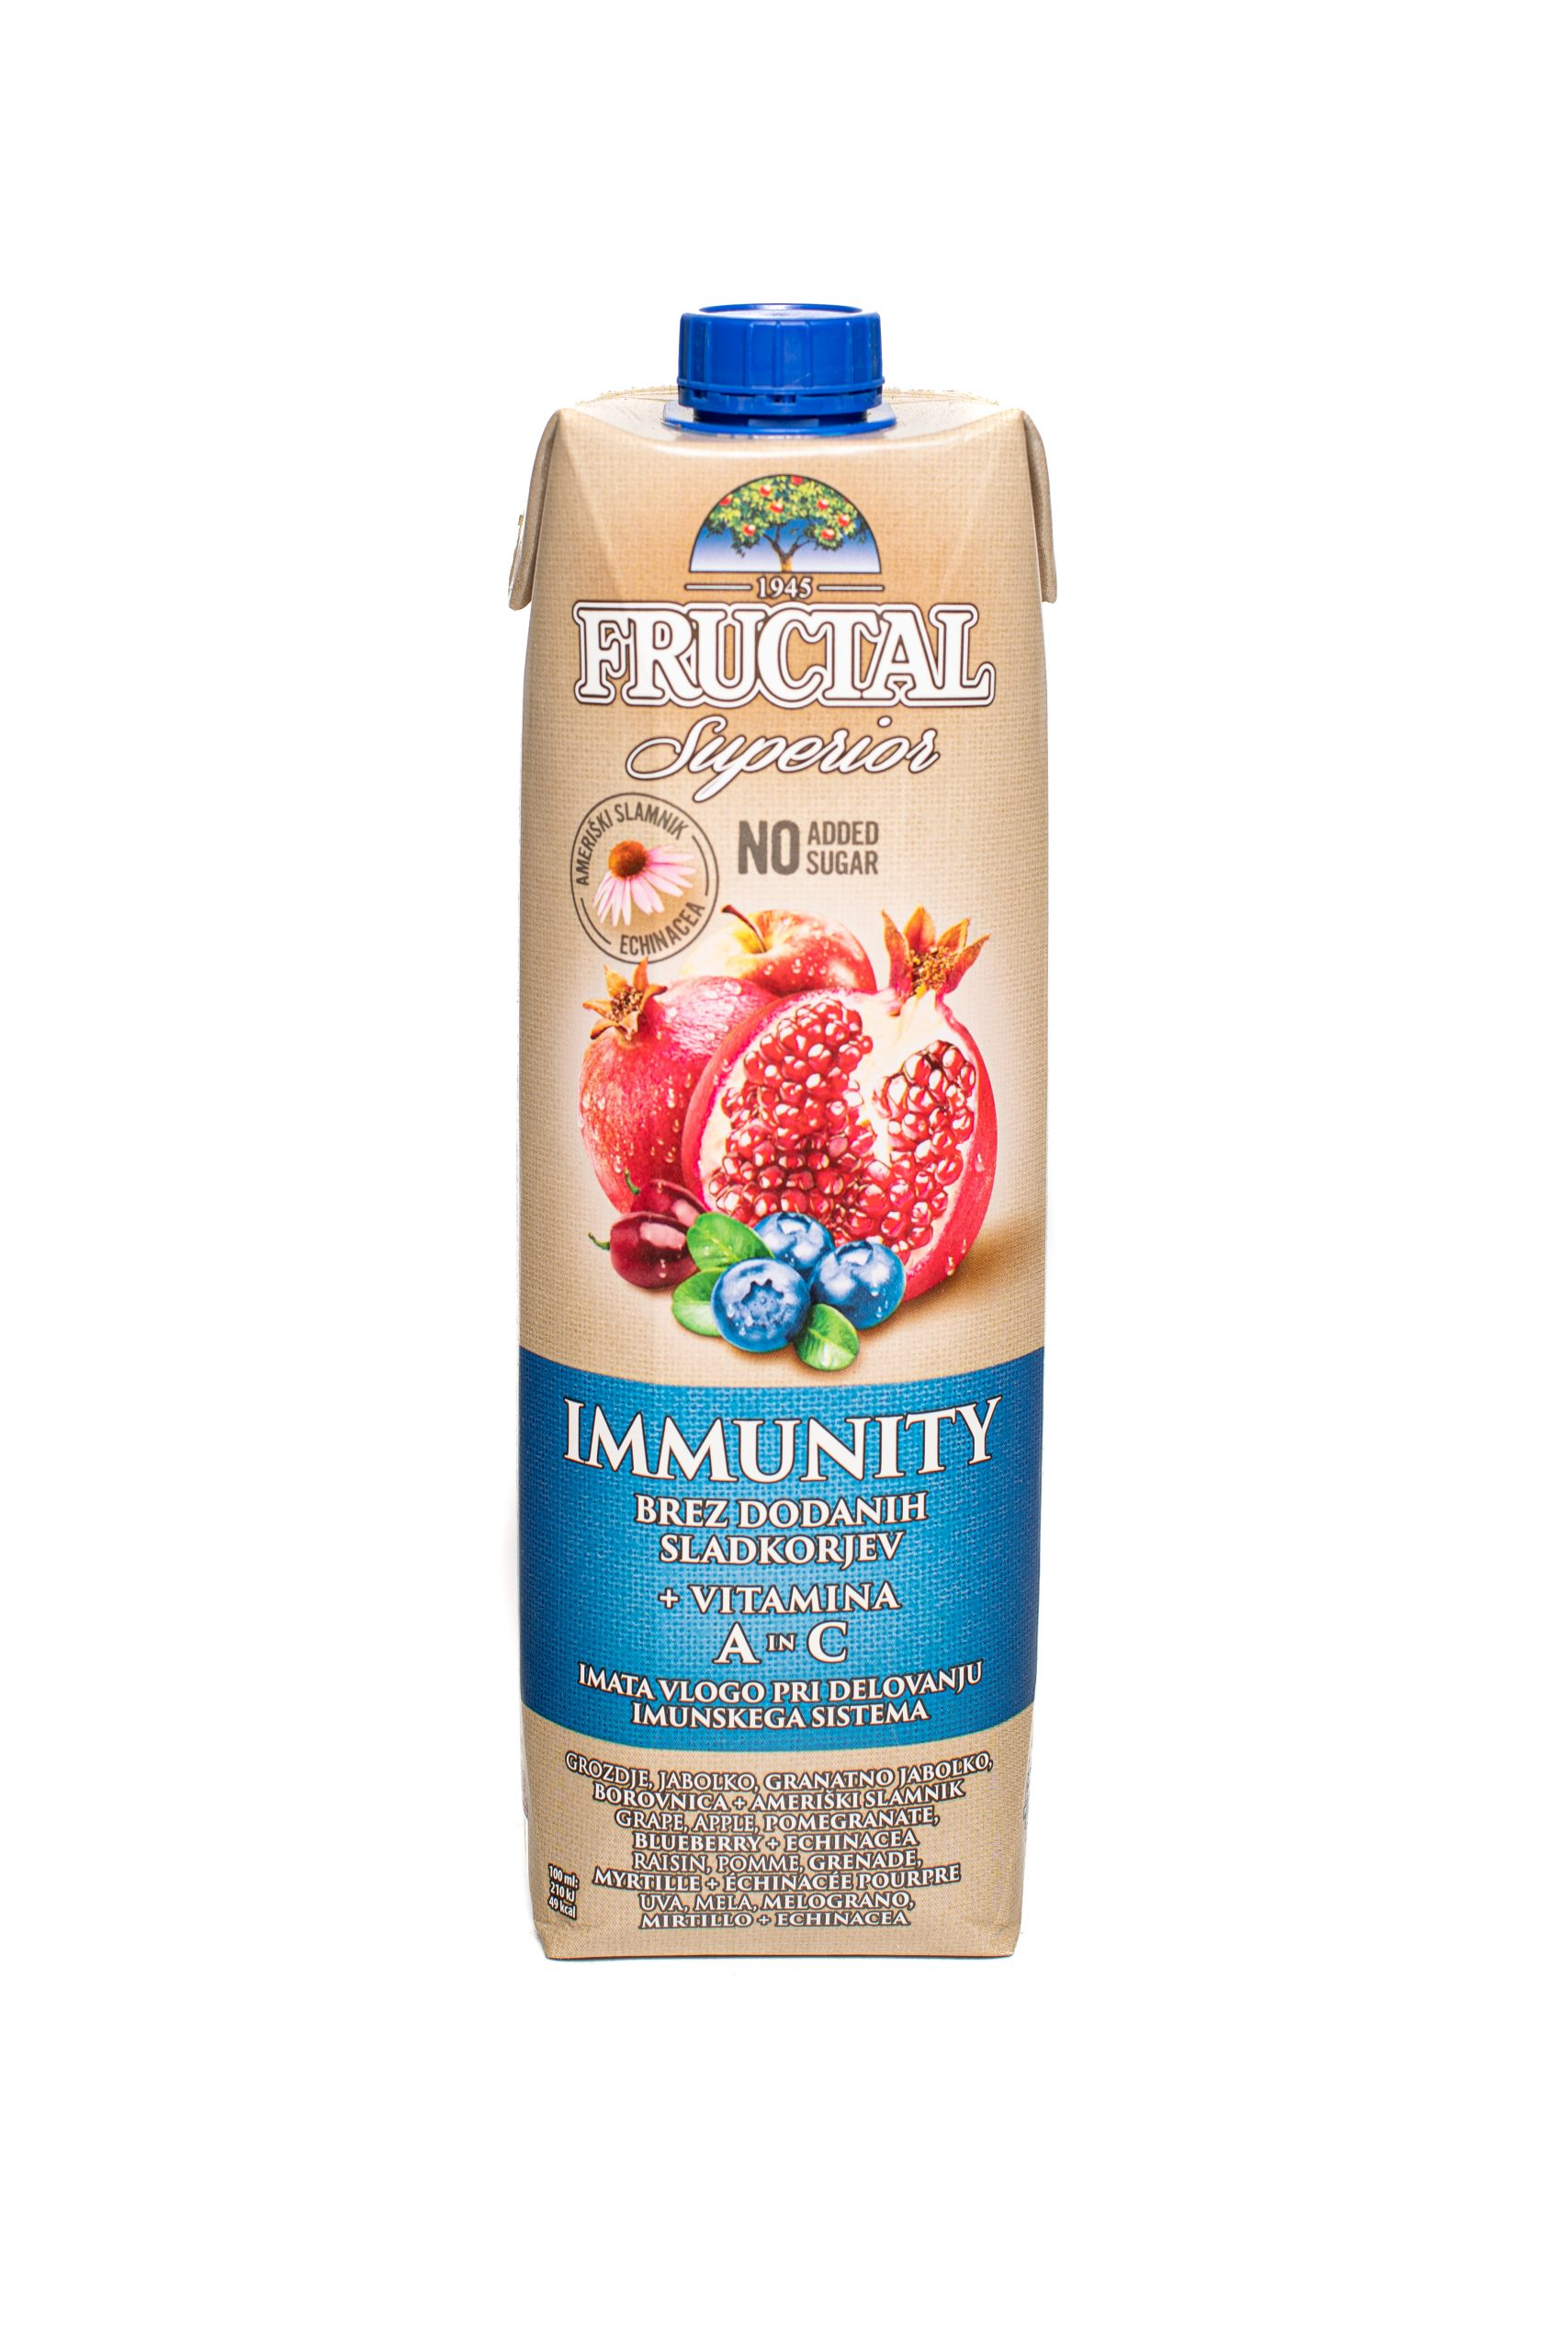 Fructal Superior Organic | 1L | No Sugar Added | Immunity